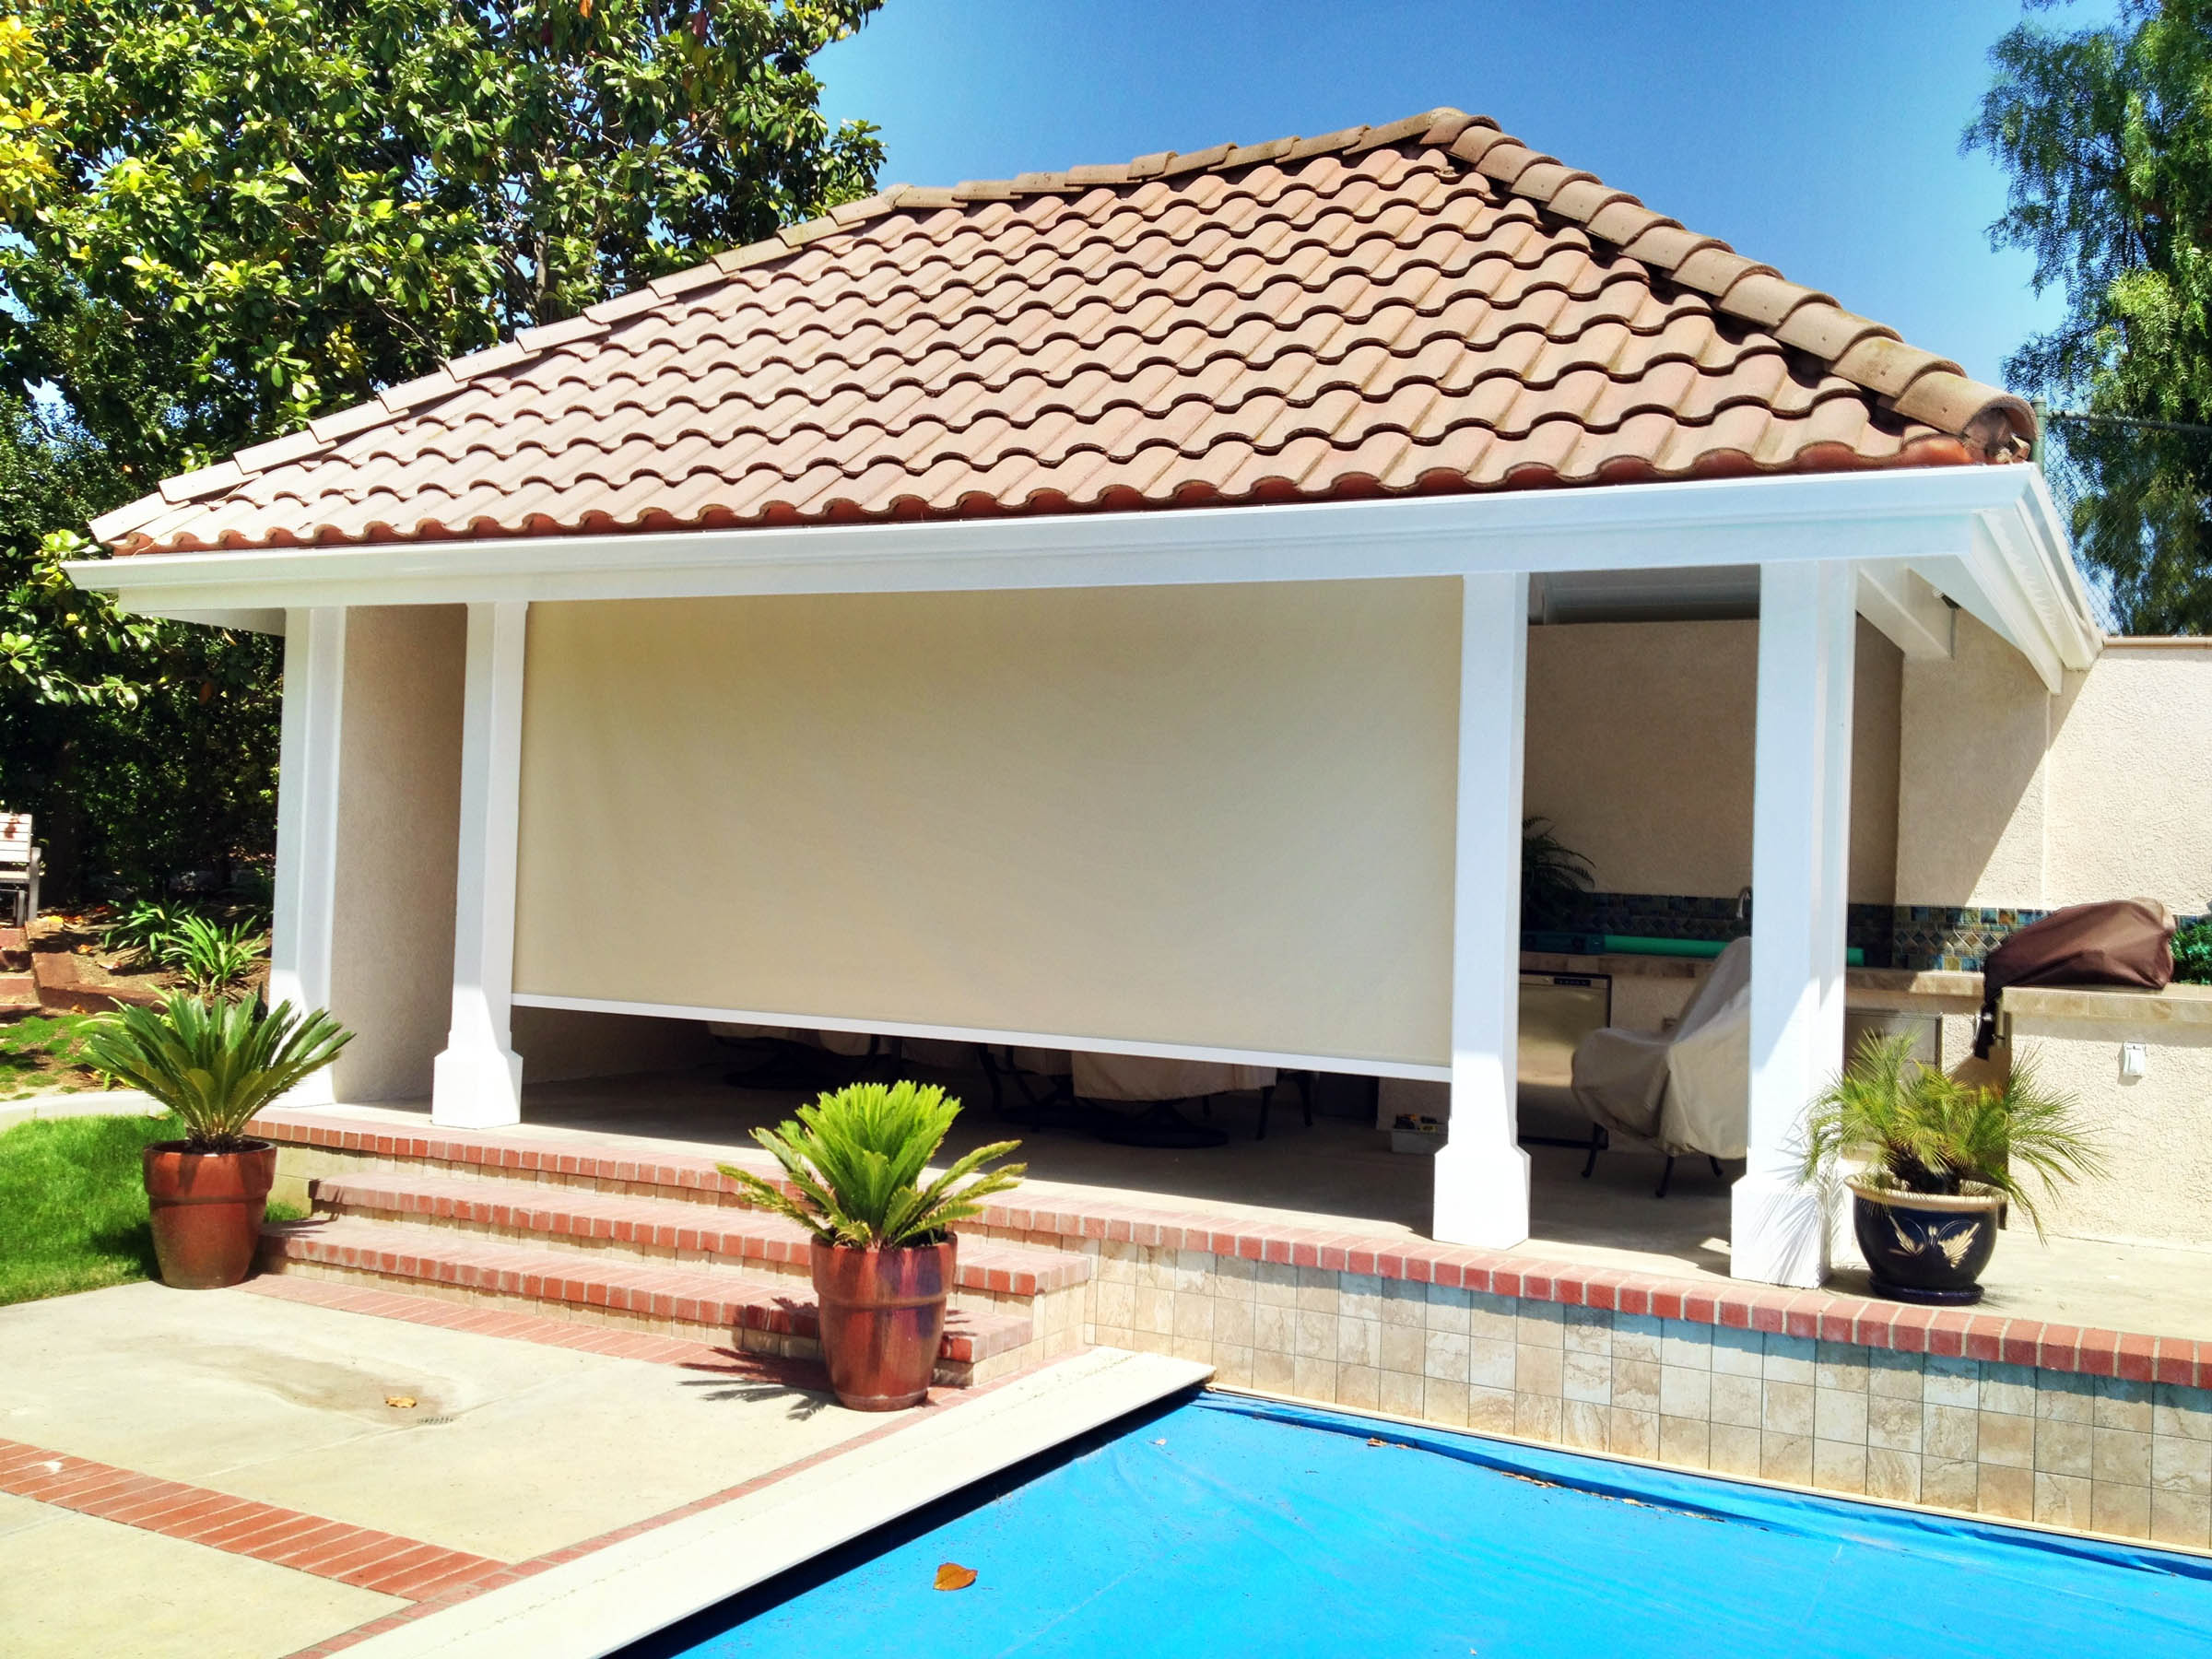 Parker Exterior Shade   Shade Down Patio Shade Makes Your Outdoor ...